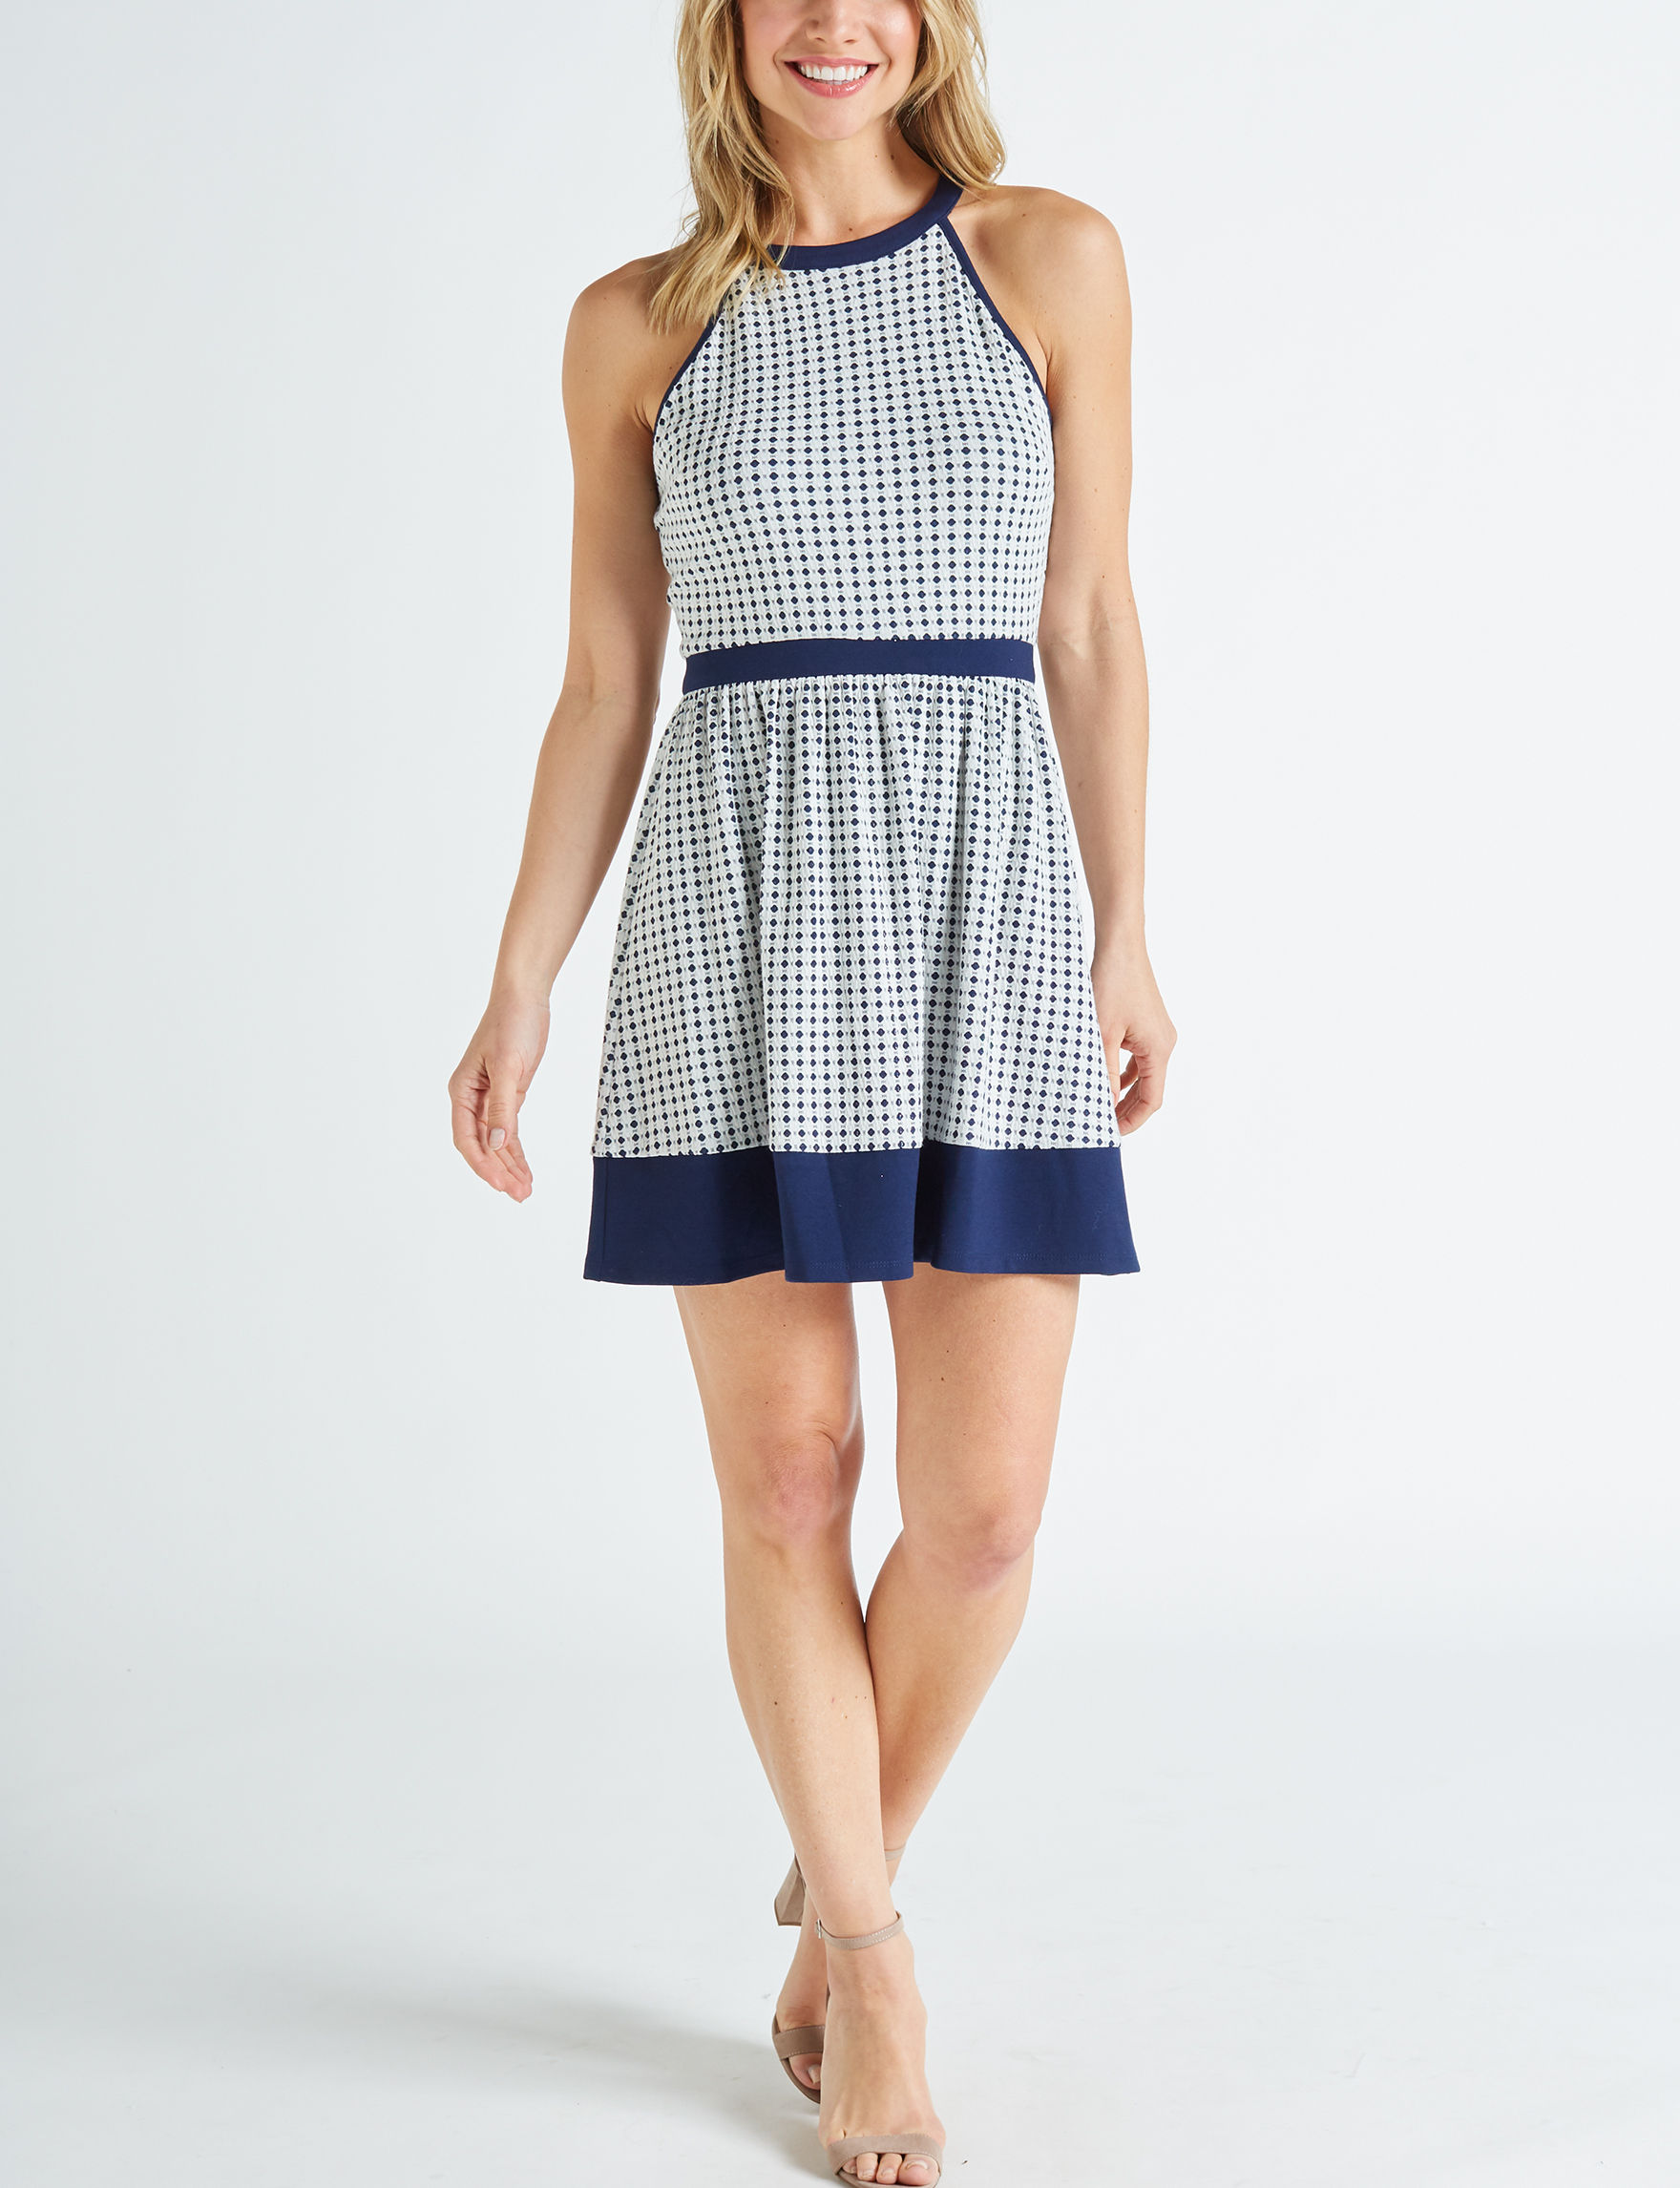 Speechless White / Navy Everyday & Casual Fit & Flare Dresses